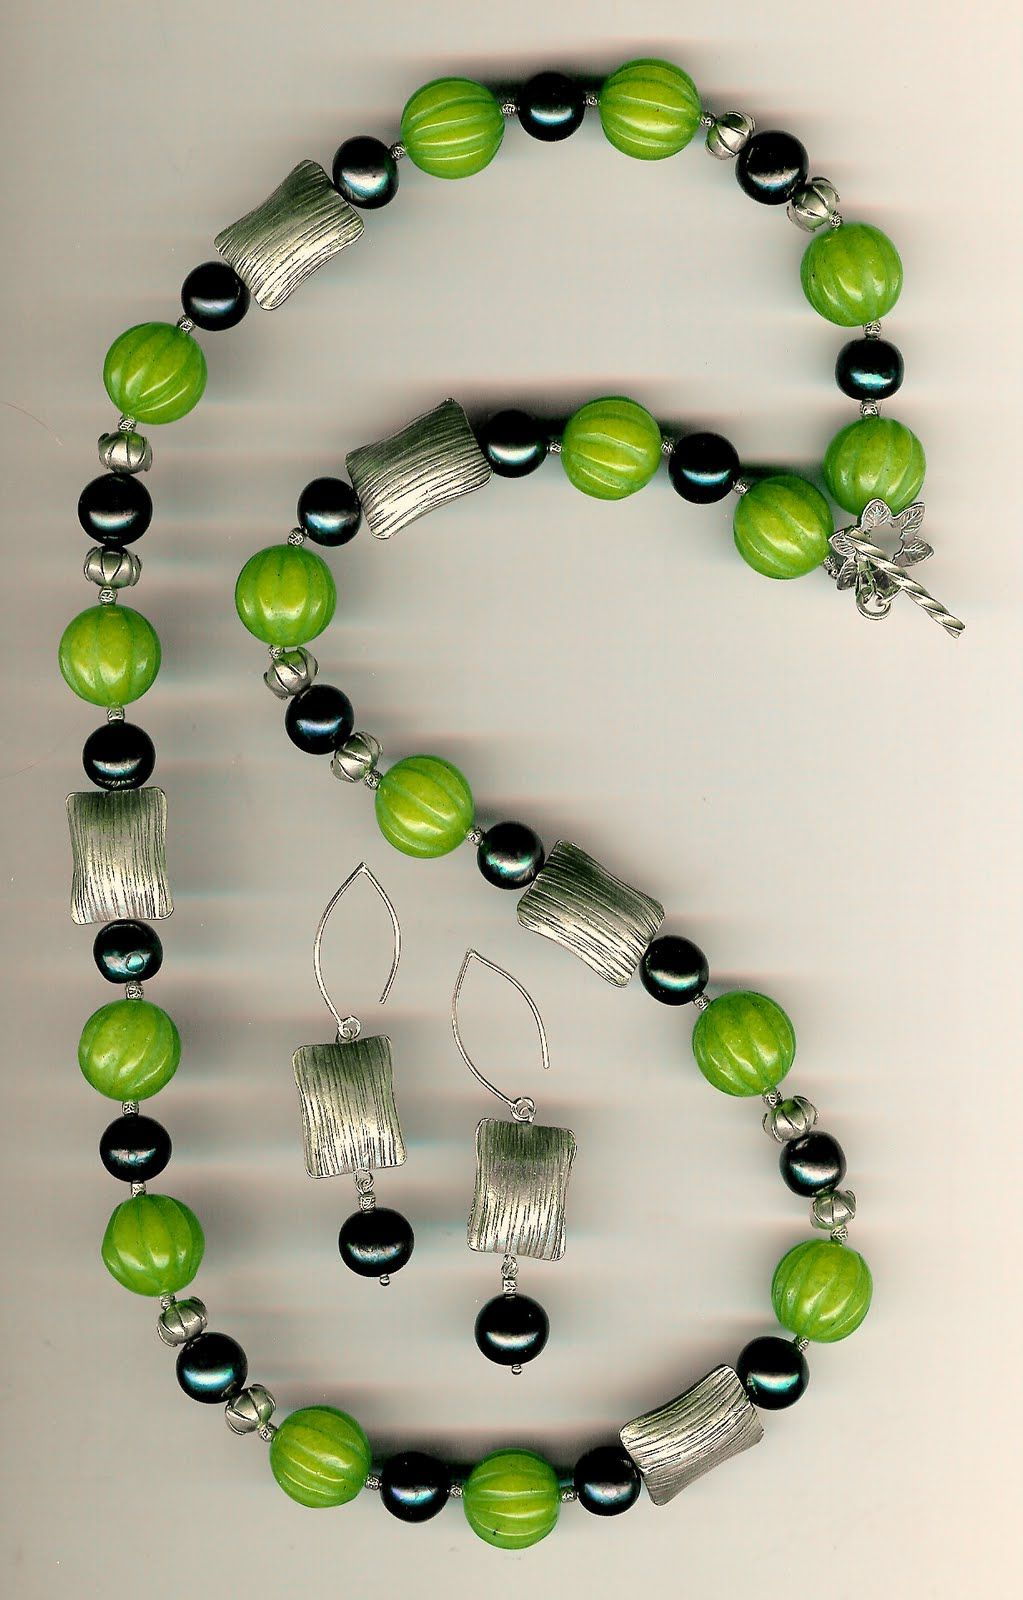 214. Green Jade, Akoya Pearls with Karen Hill Thai Sterling Silver + Earrings